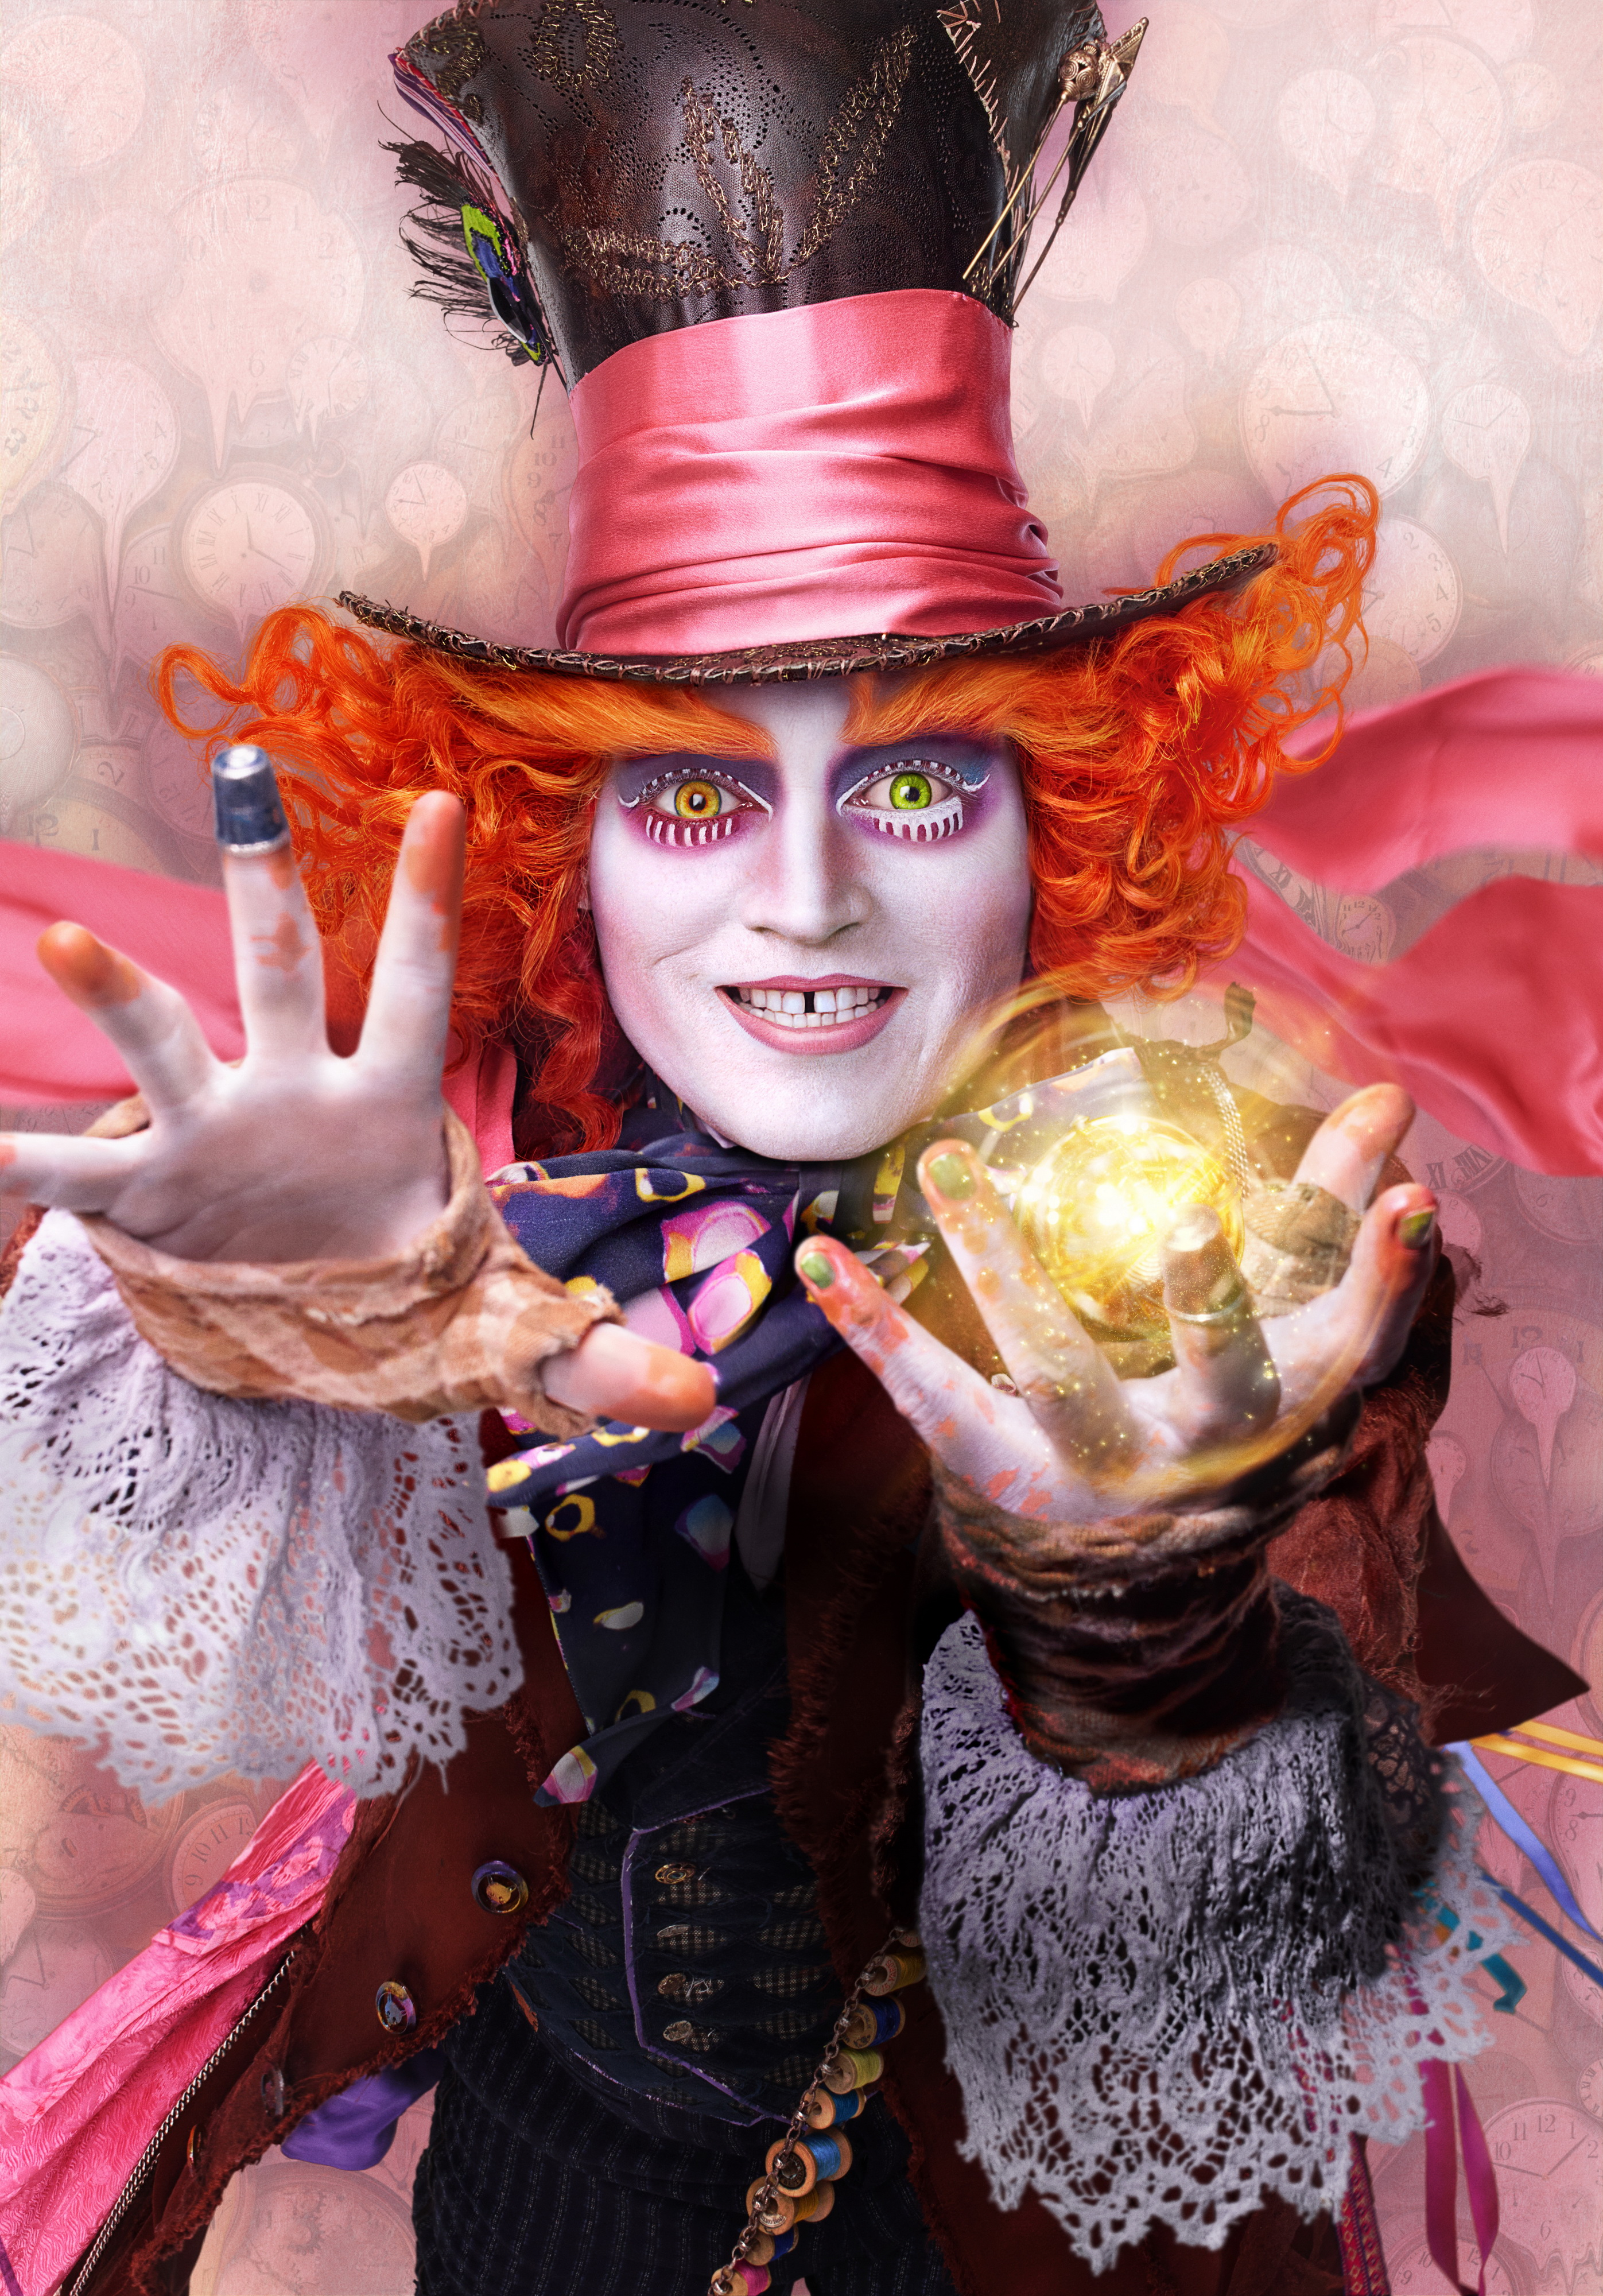 Johnny Depp is Hatter in ALICE THROUGH THE LOOKING GLASS.